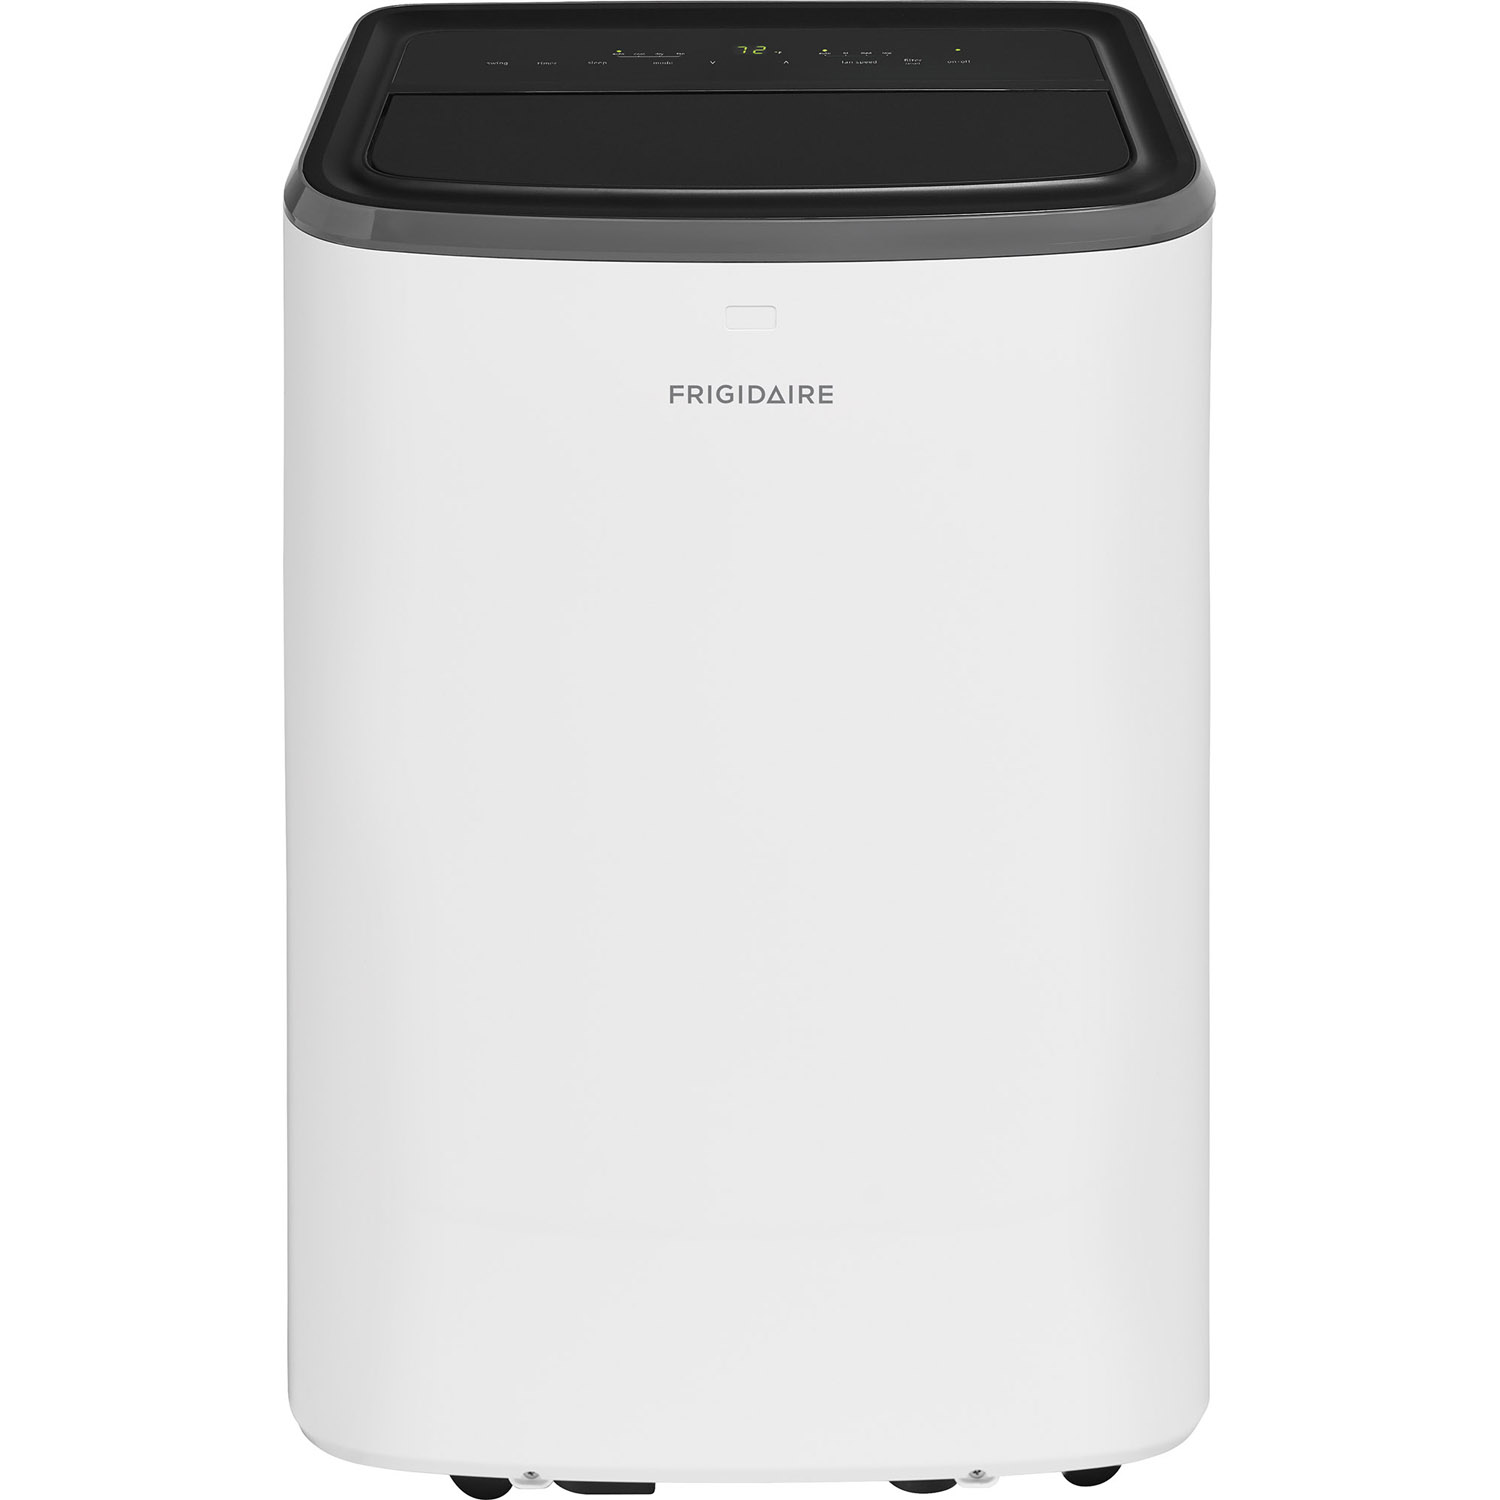 Frigidaire Home fort Portable Air Conditioner FFPA0822U1